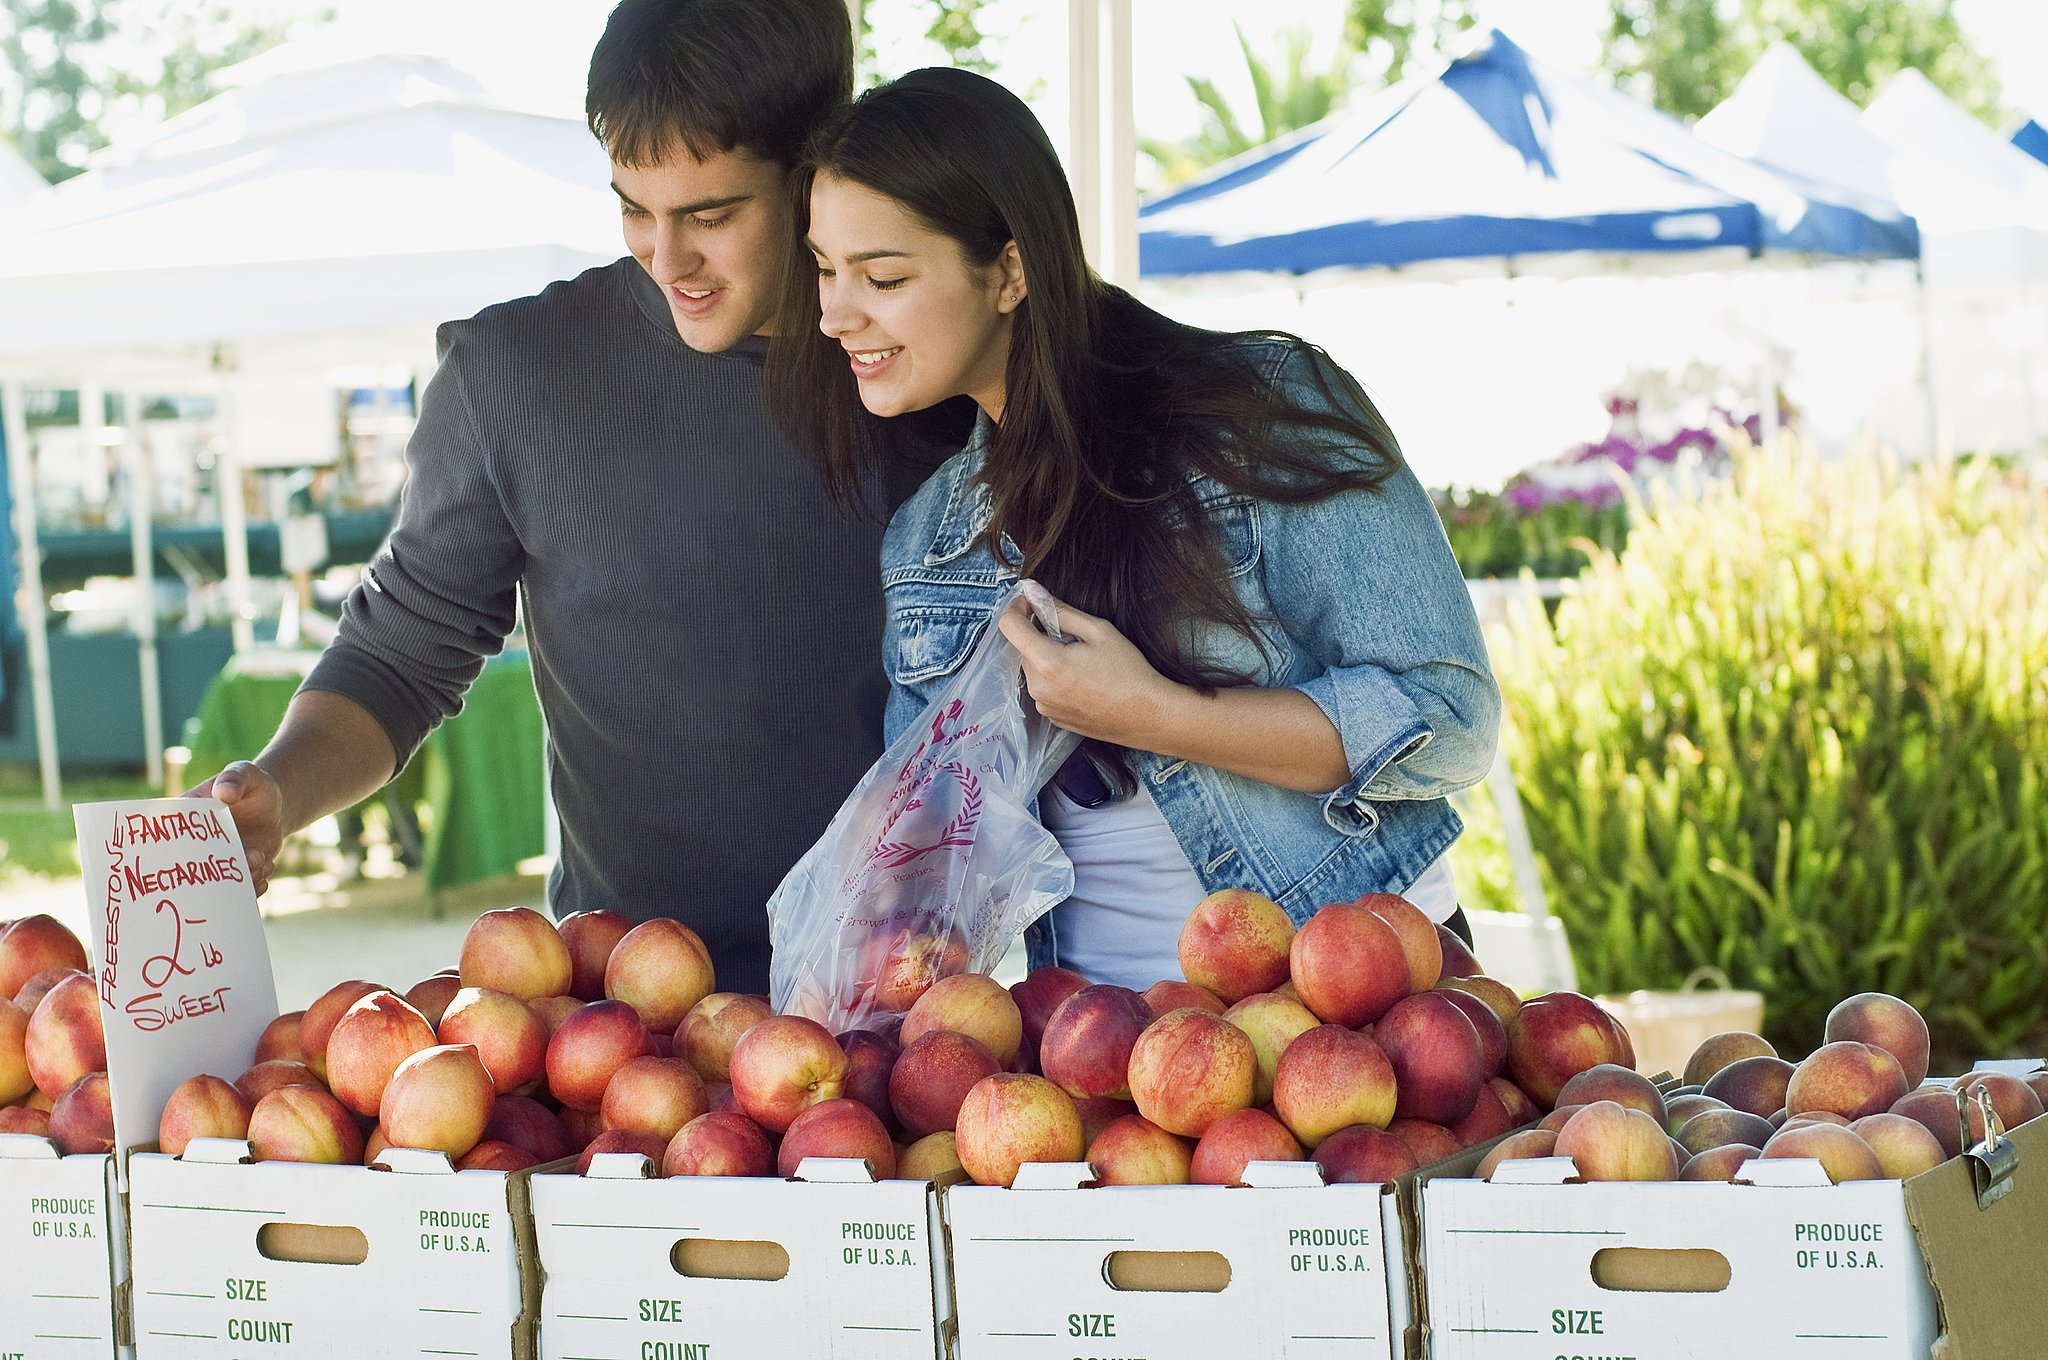 Turn fruit shopping into social hour.